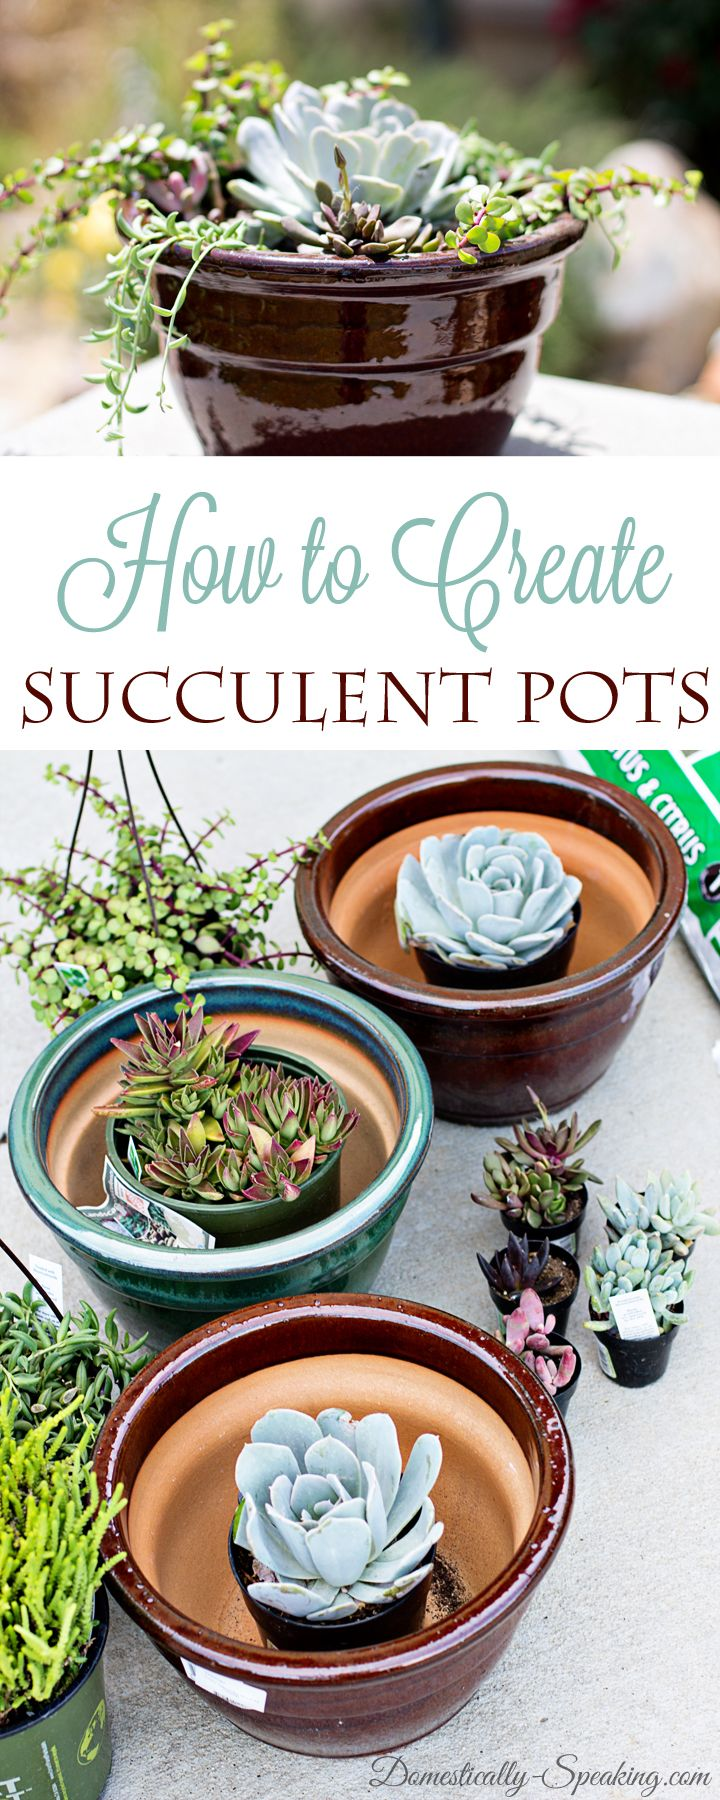 Succulents are great drought tolerant plants that are easy to maintain.